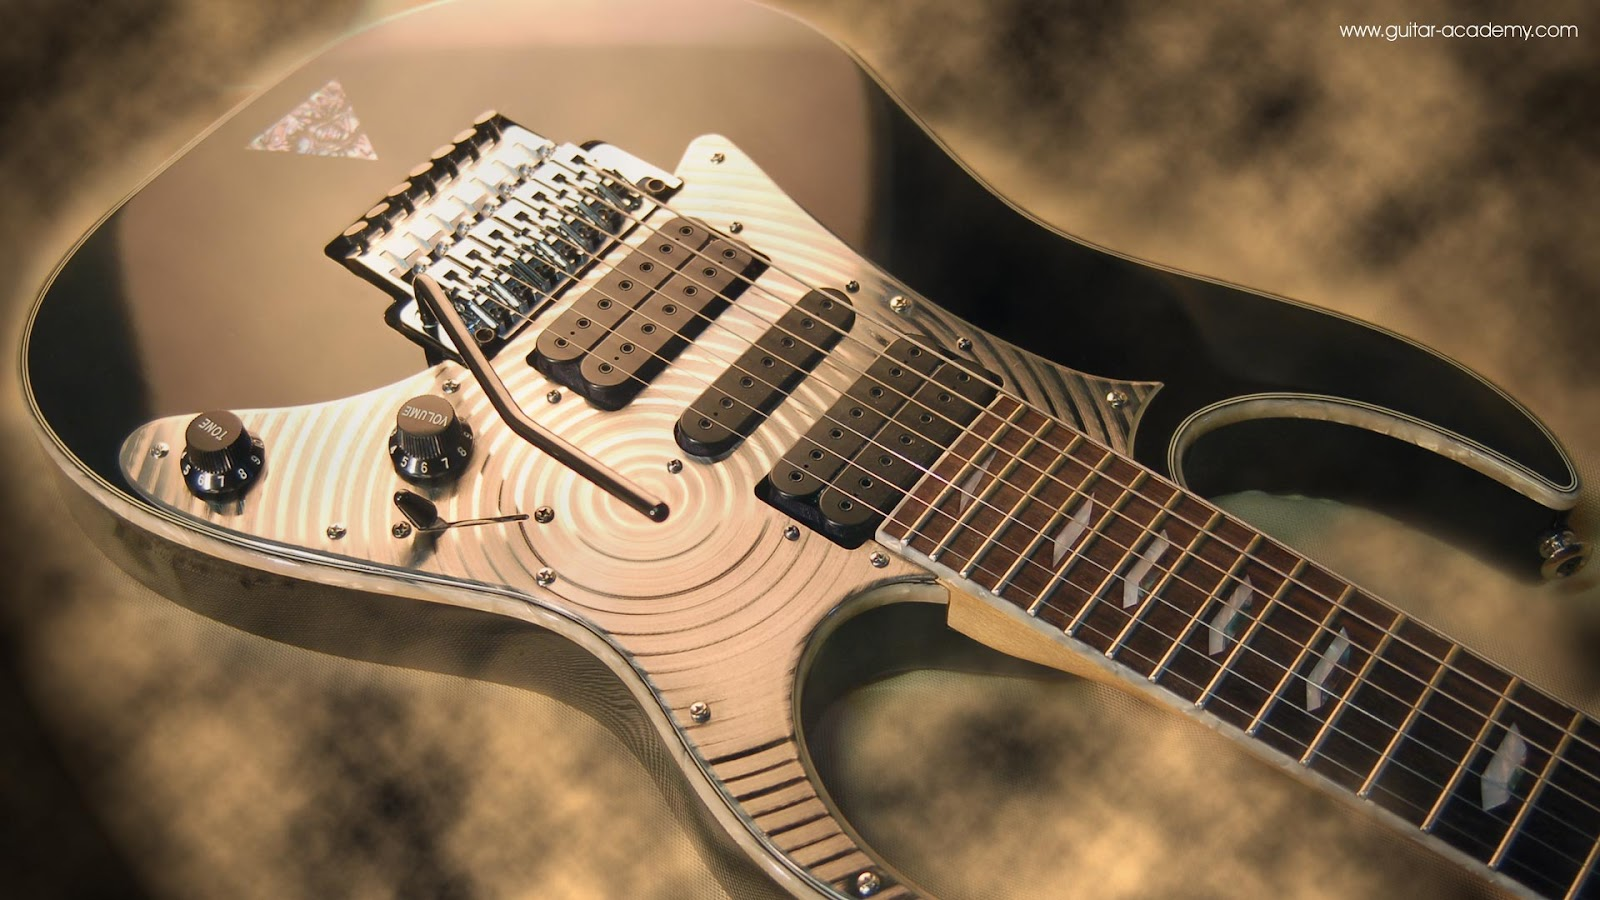 Hd wallpaper guitar - Top 23 Super And Fabulous Guitar Wallpapers In Hd For More Wallpapers Just Click On Image